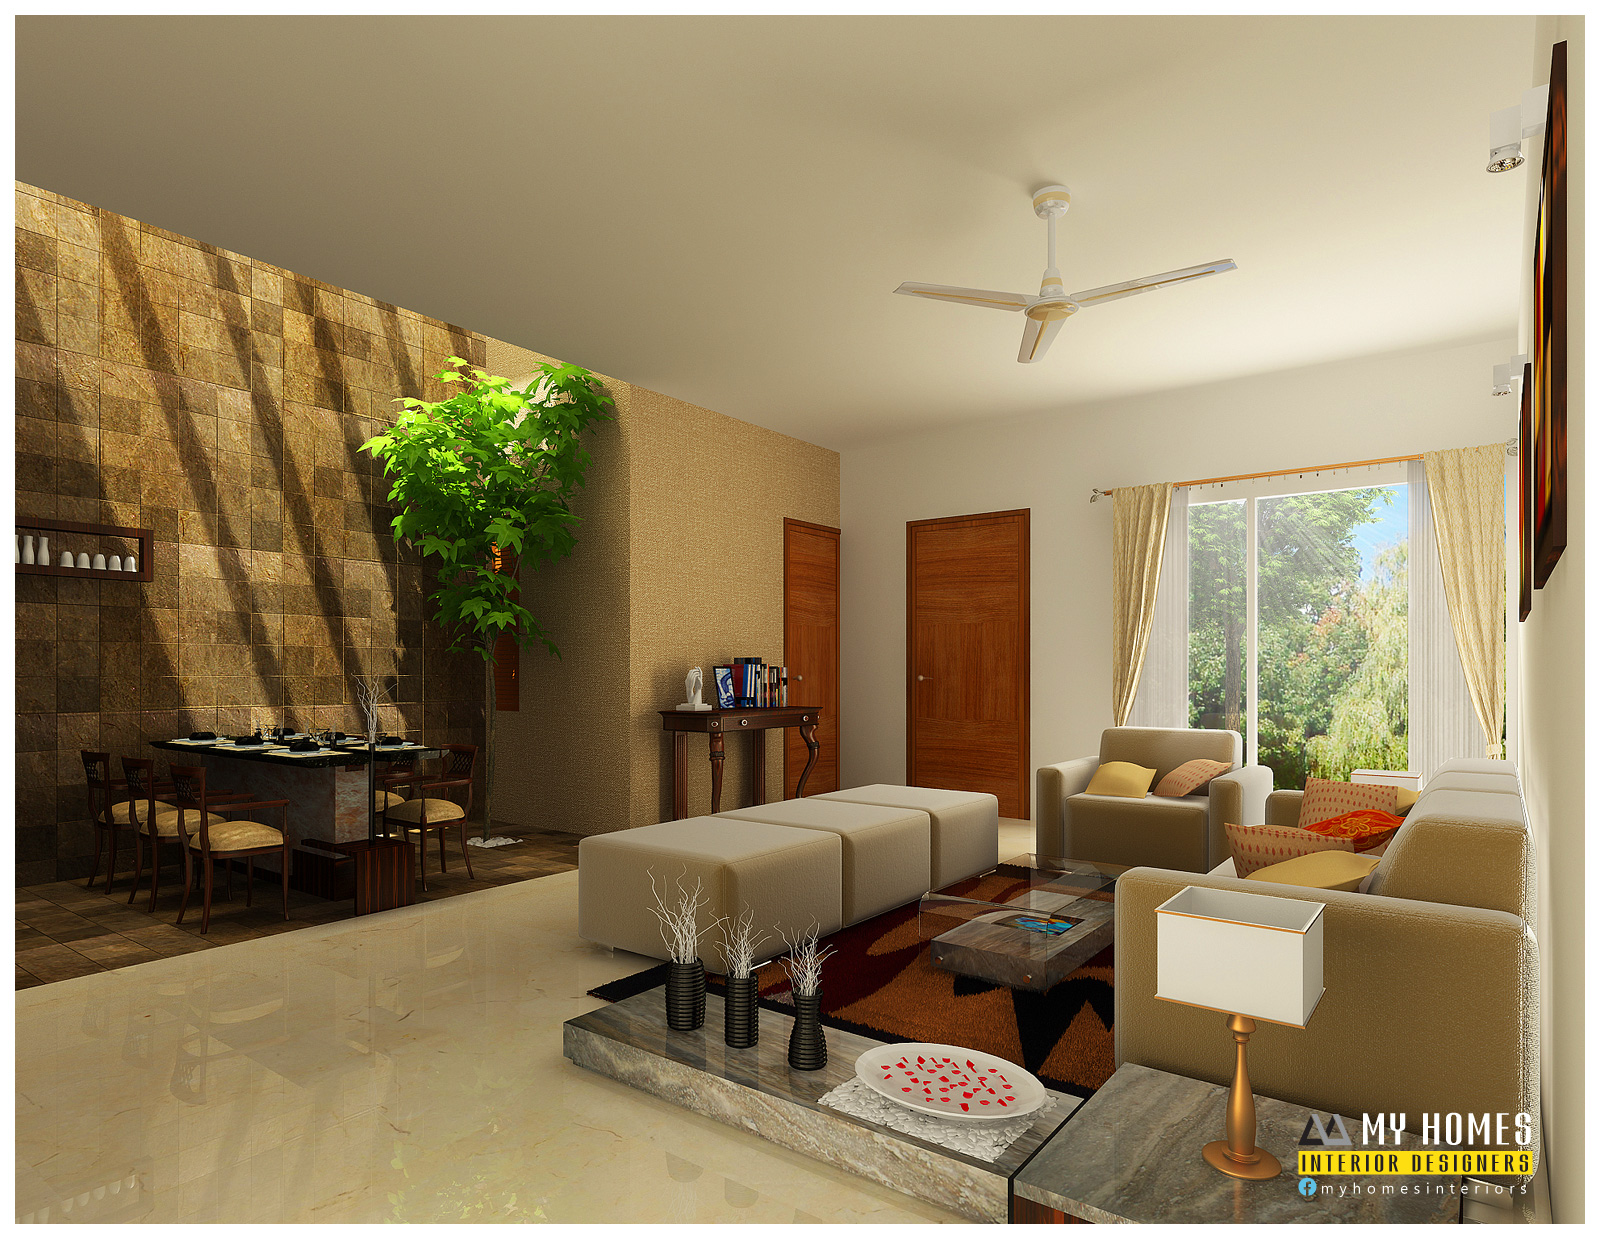 Kerala interior design ideas from designing company thrissur Home design and cost